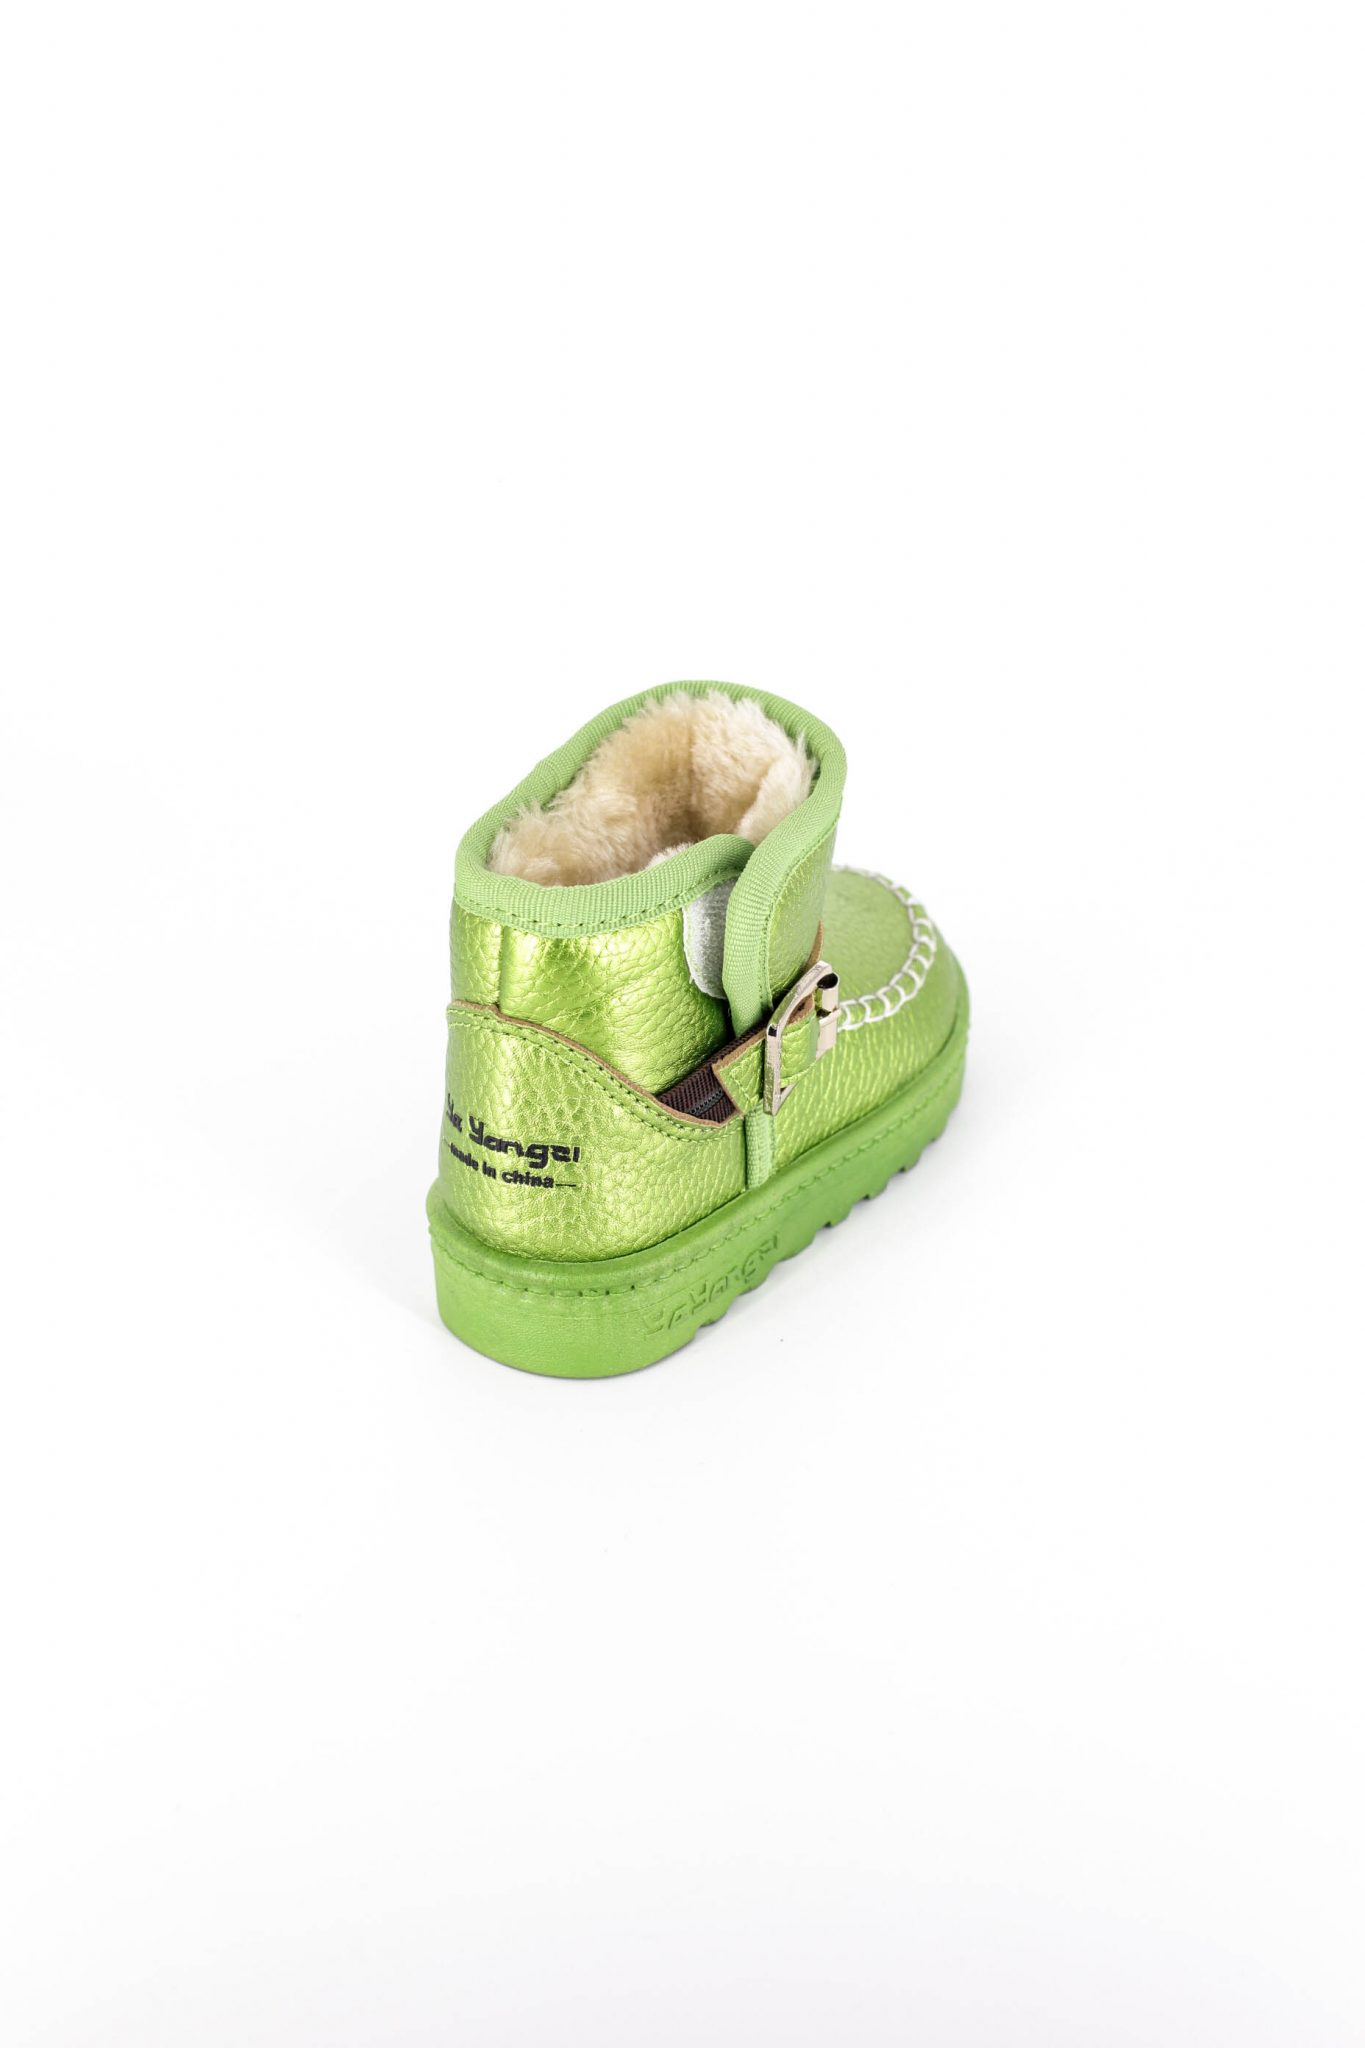 Cizme Copii Tip UGG Green